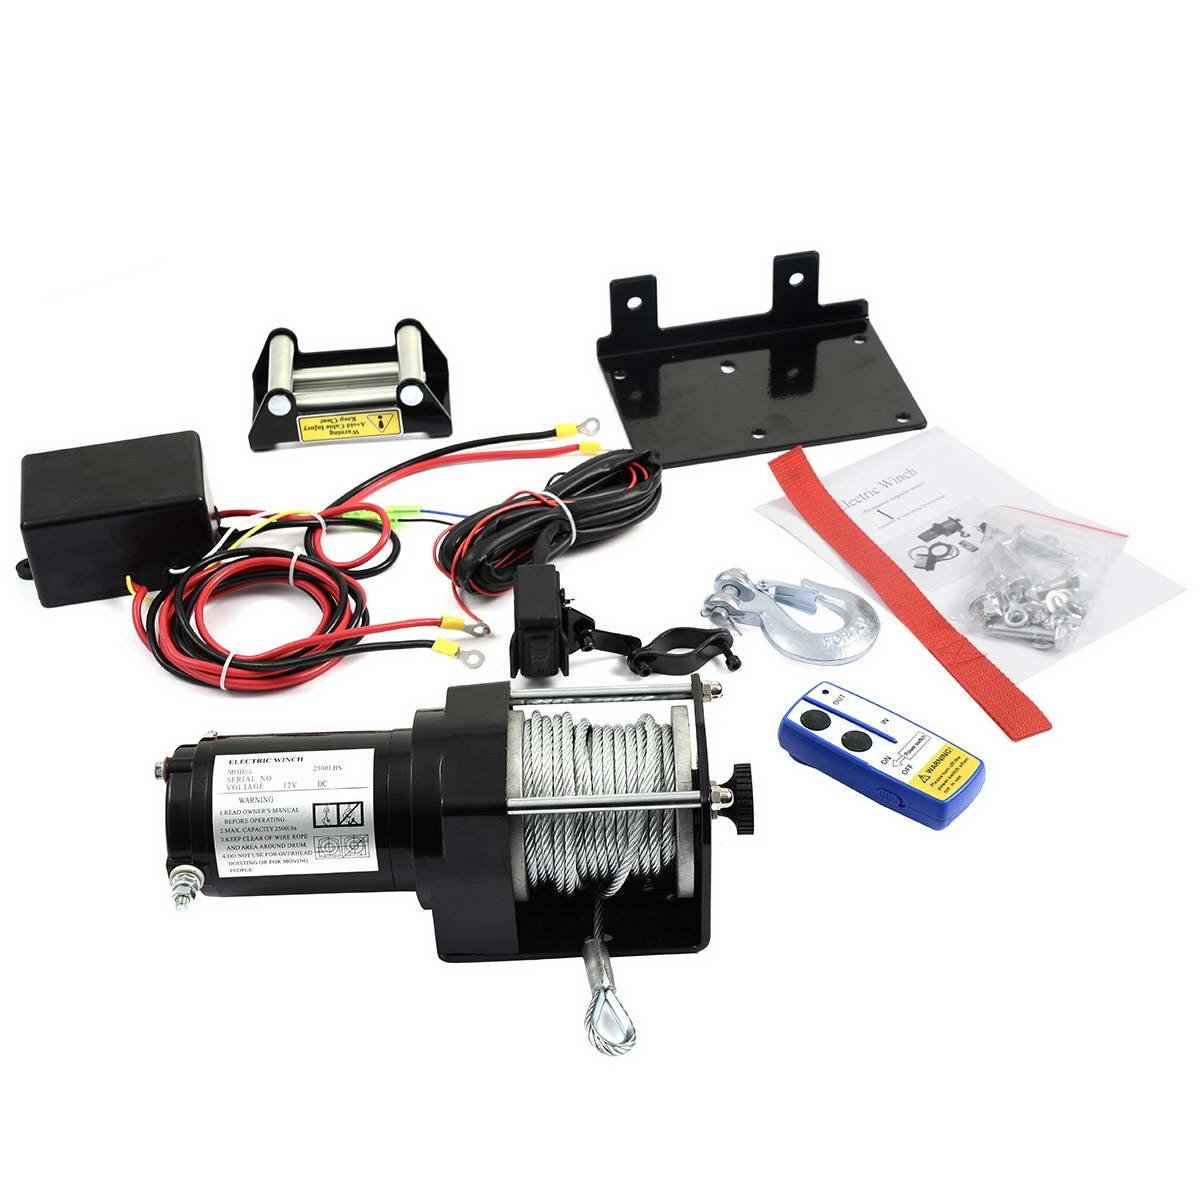 2500lbs DC 12V Electric Recovery Winch for SUV Truck Car with Wireless Remote Control Kit